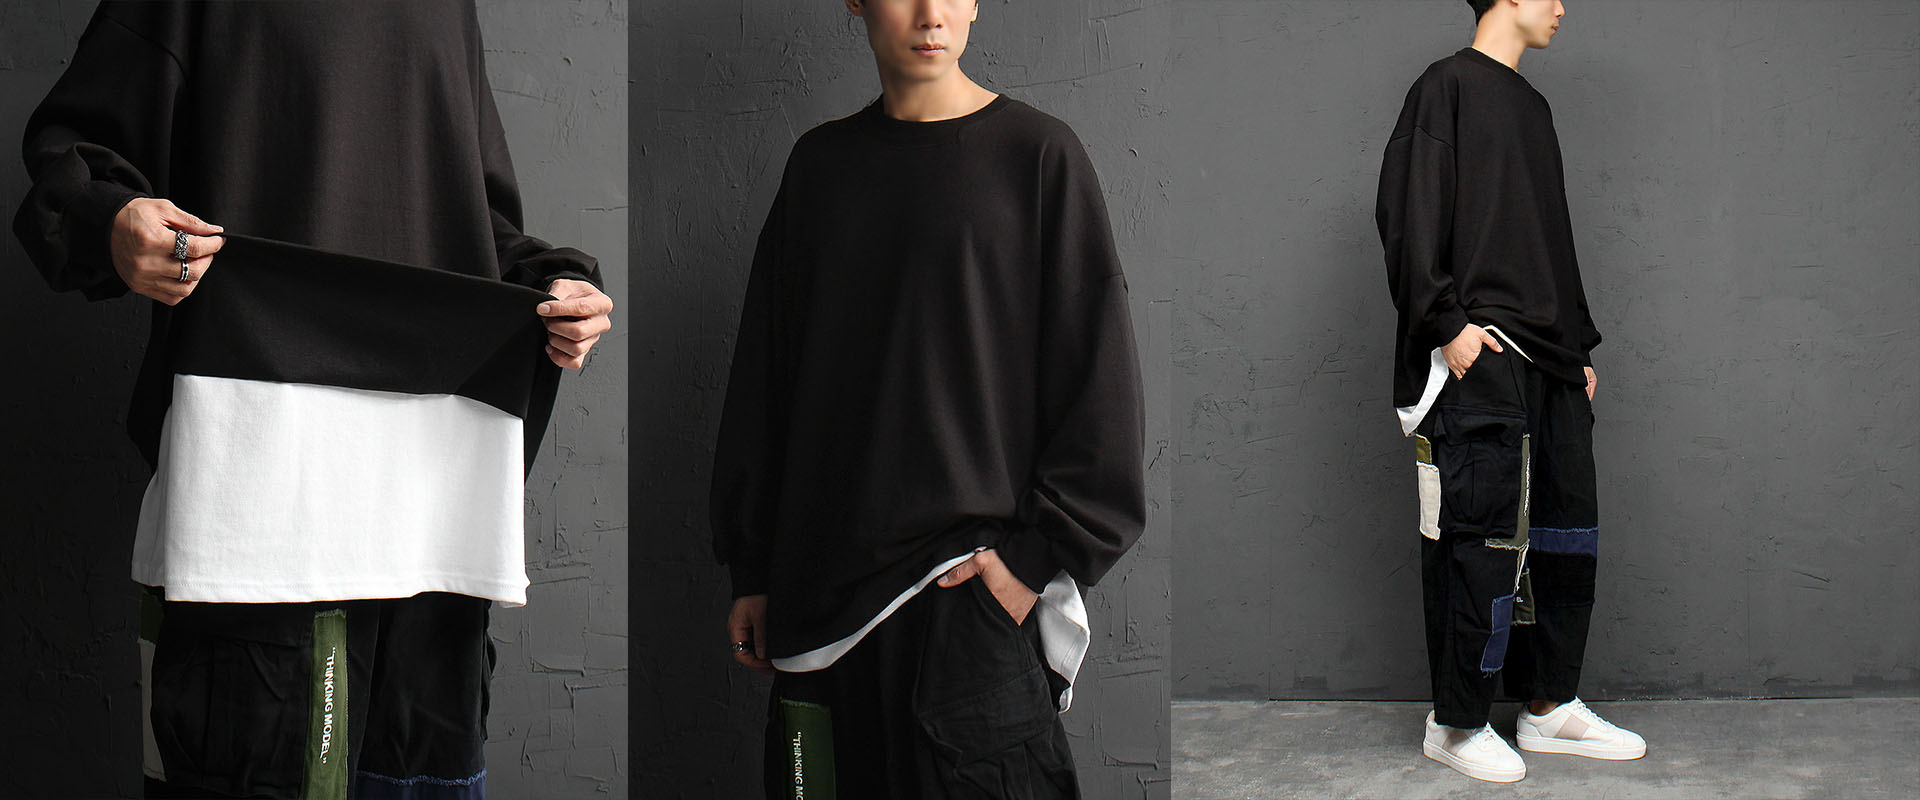 Oversized Loose Fit Layered Hem Long Sleeve Tee 841